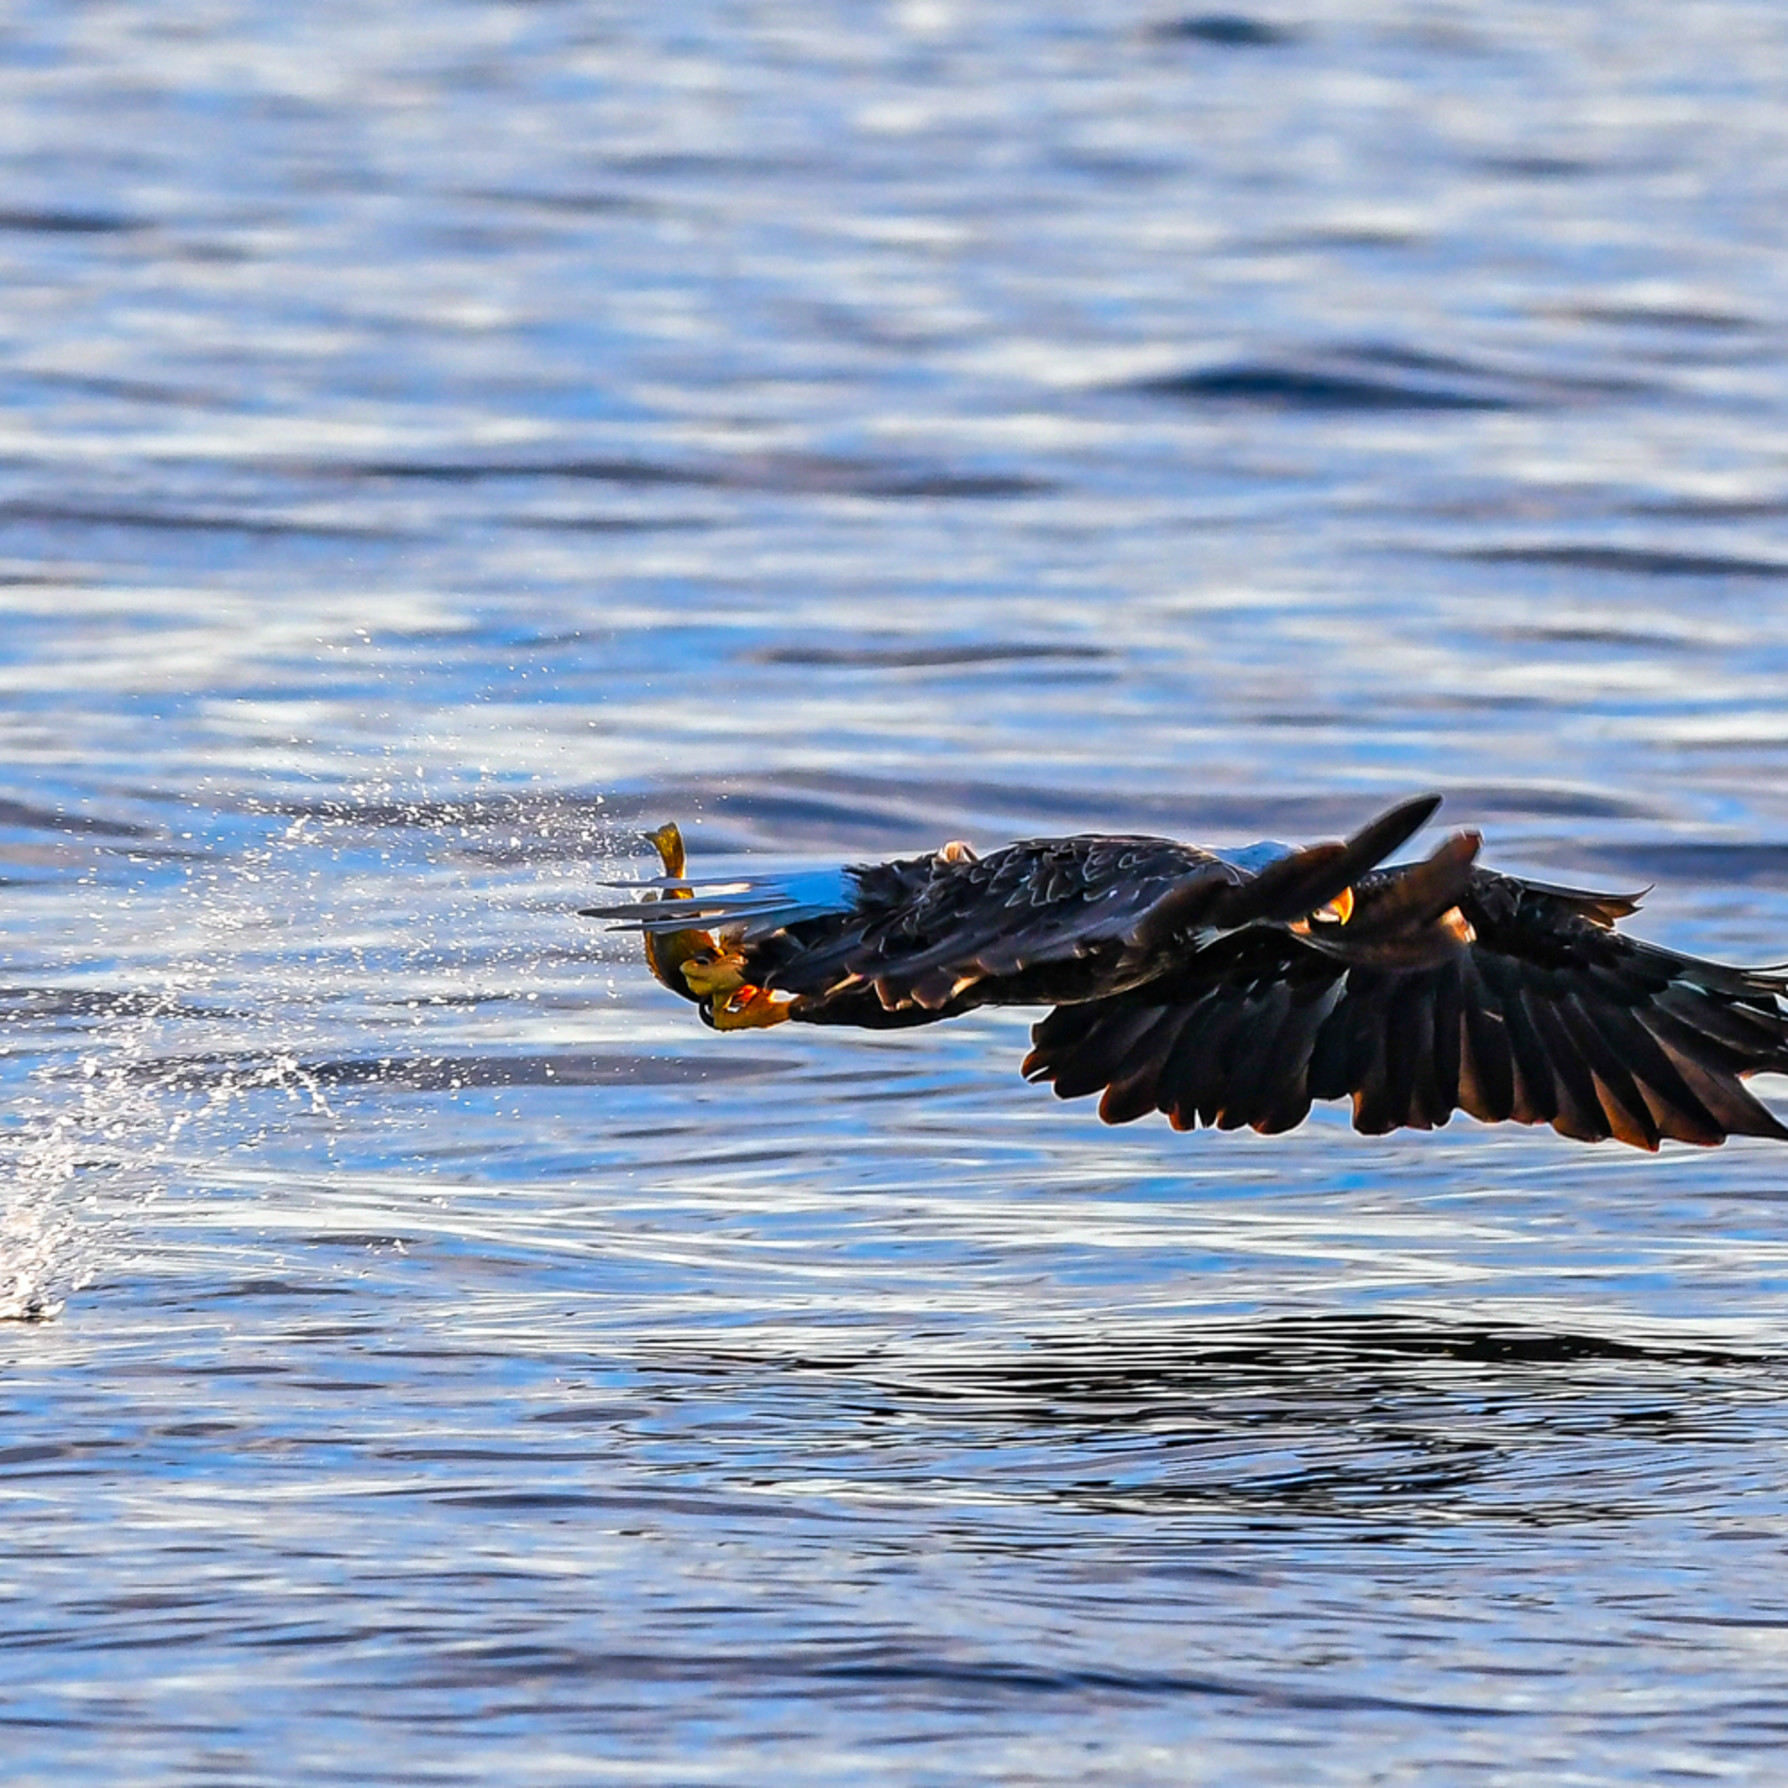 Andy crawford photography eagle catching fish 5 kjt1za